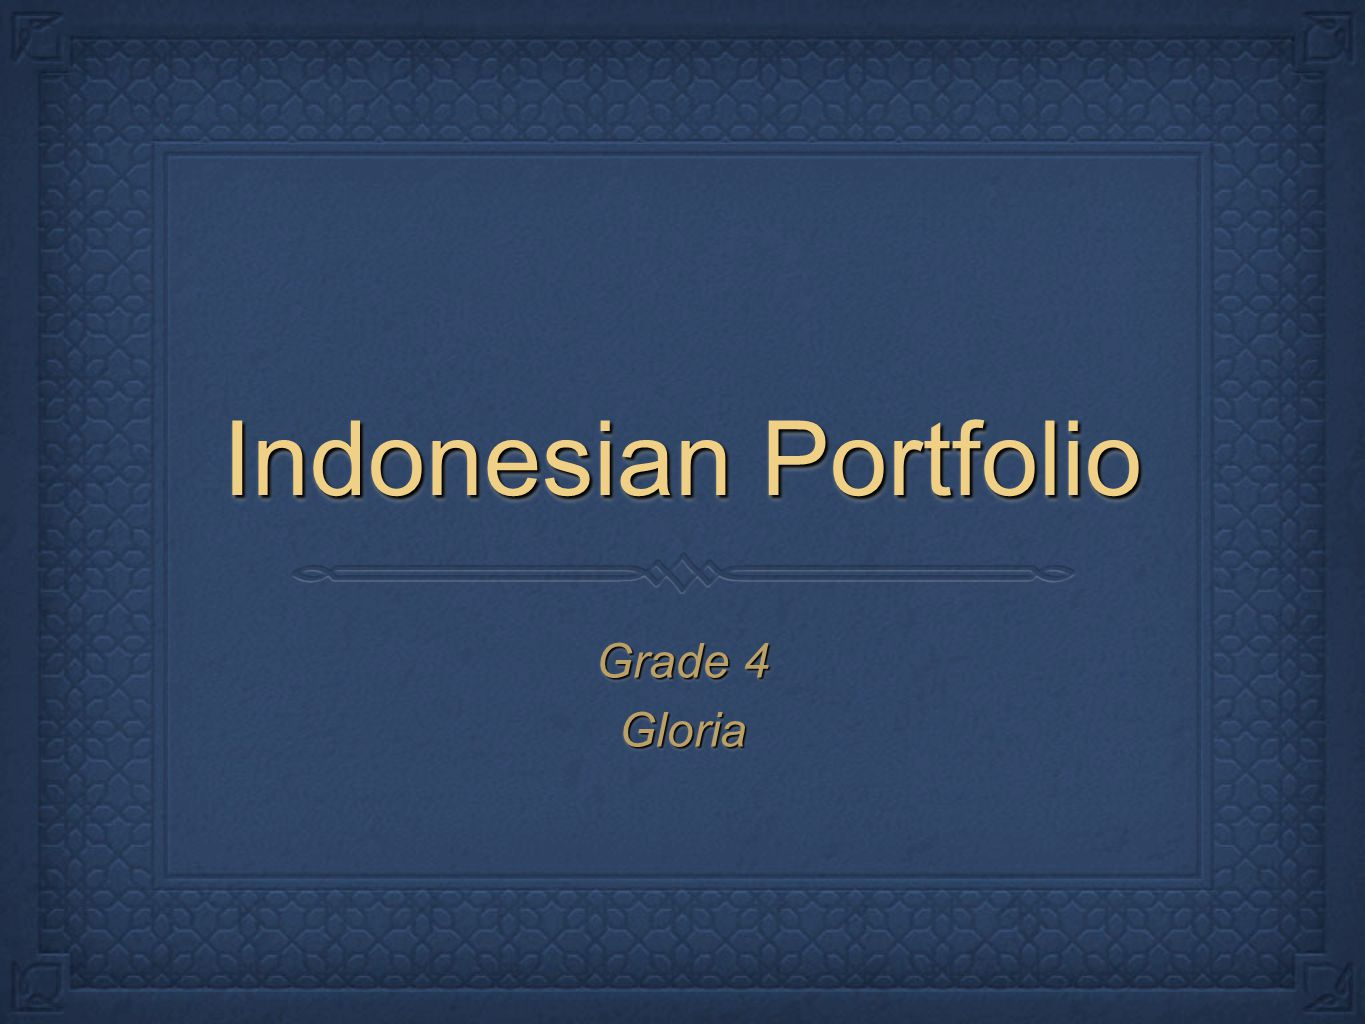 Indonesian Portfolio Grade 4 Gloria